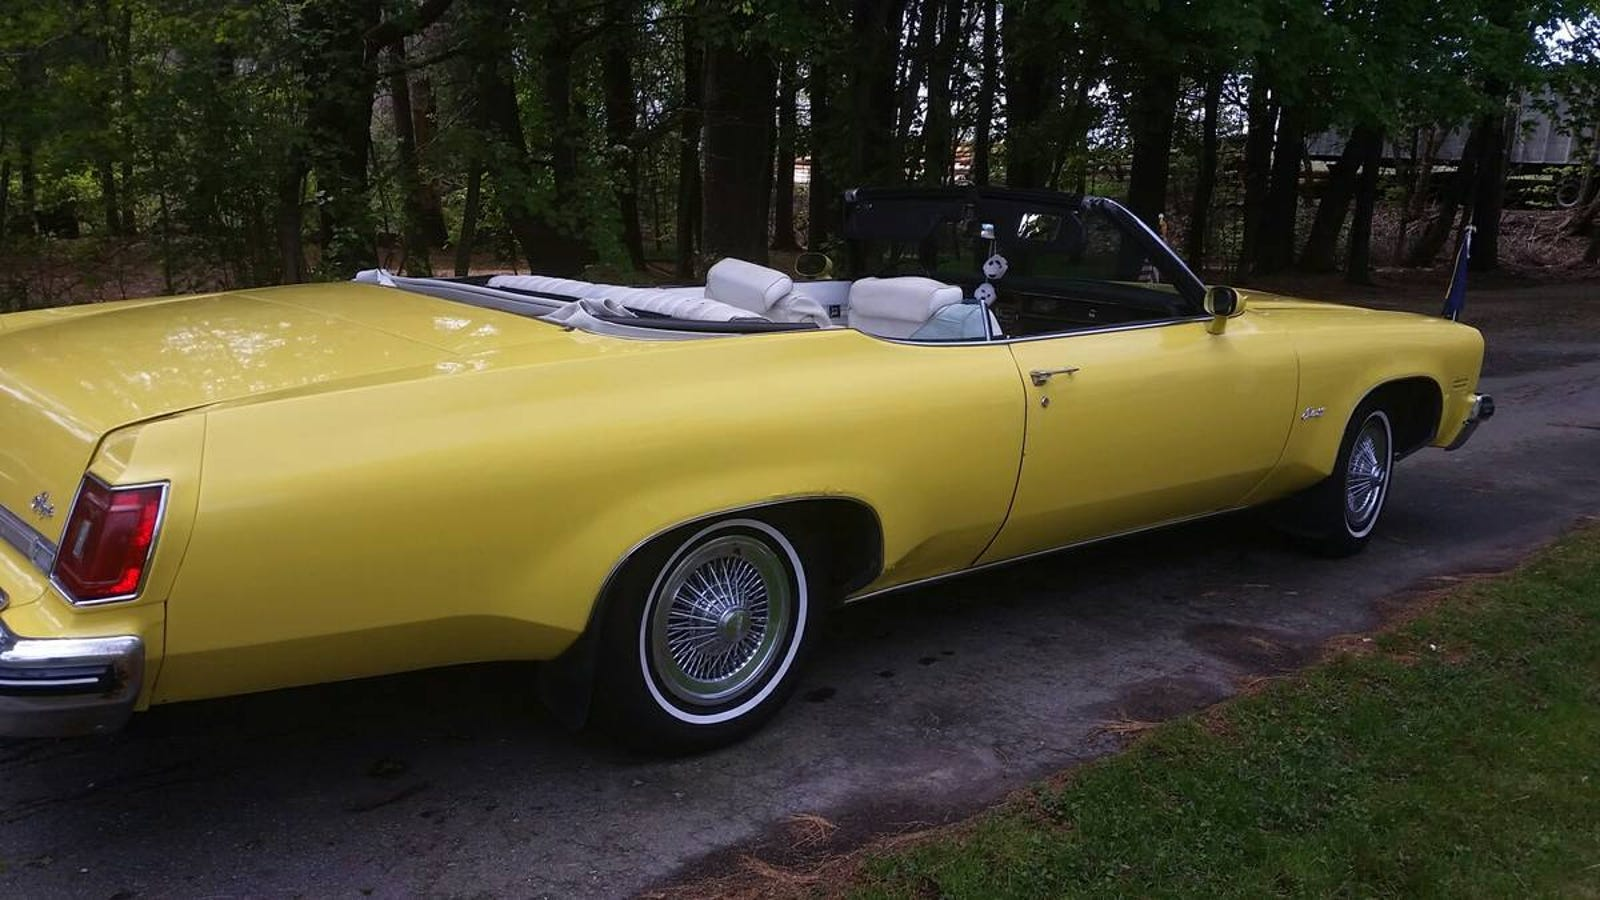 Olds 88 convertible craigslist